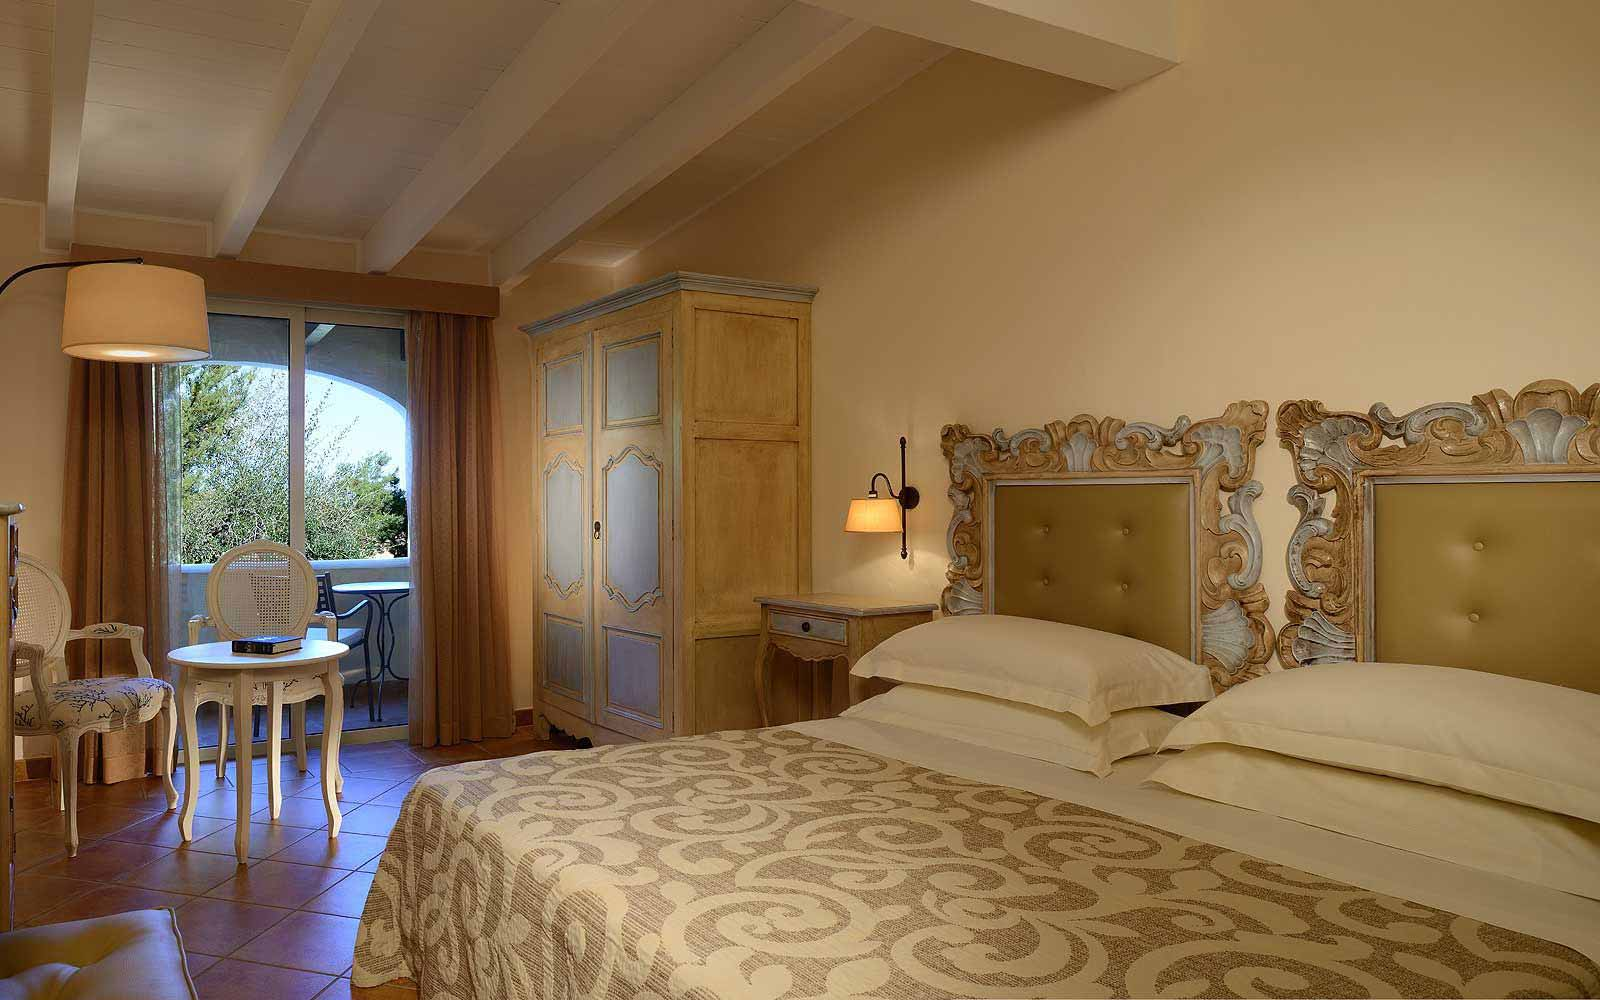 Classic Room at Colonna Pevero Hotel